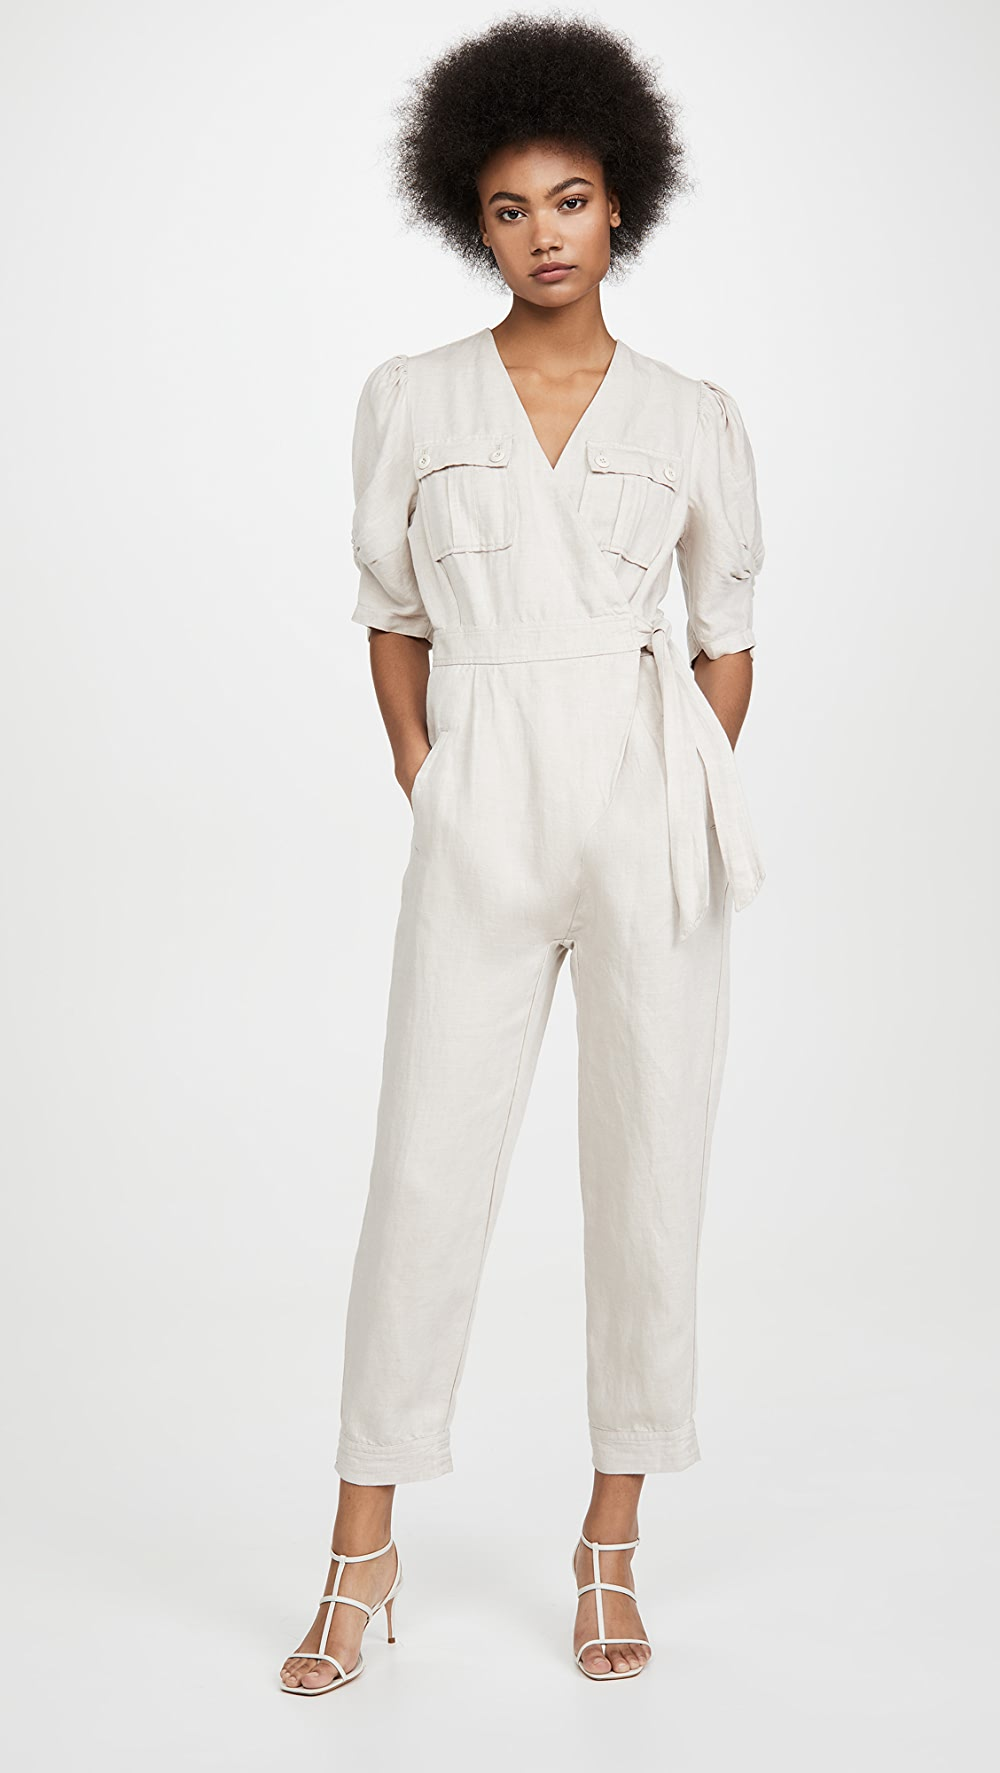 100% True Joie - Leroy Jumpsuit Terrific Value